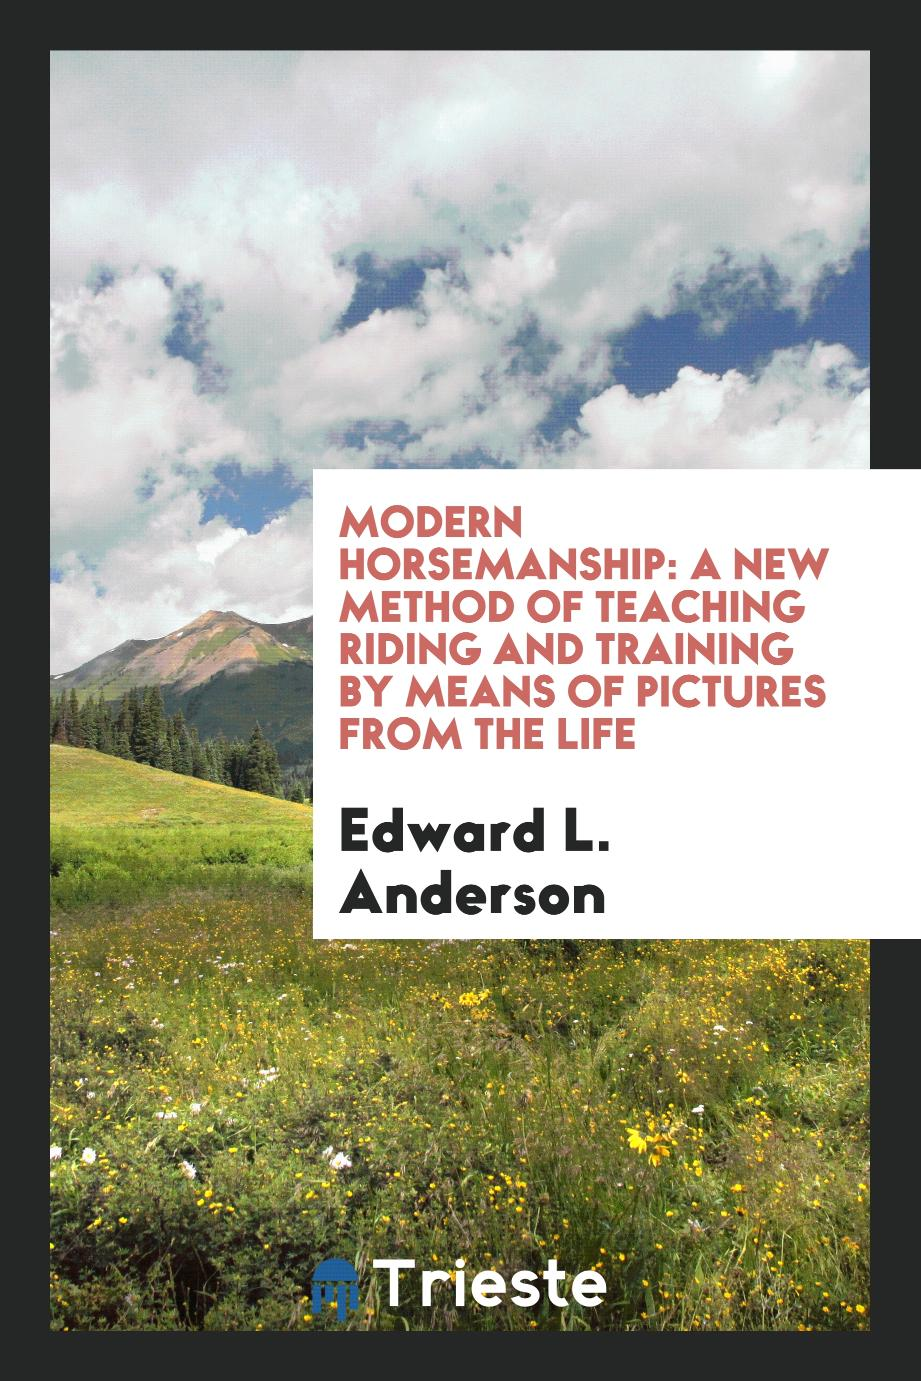 Modern Horsemanship: A New Method of Teaching Riding and Training by Means of Pictures from the Life